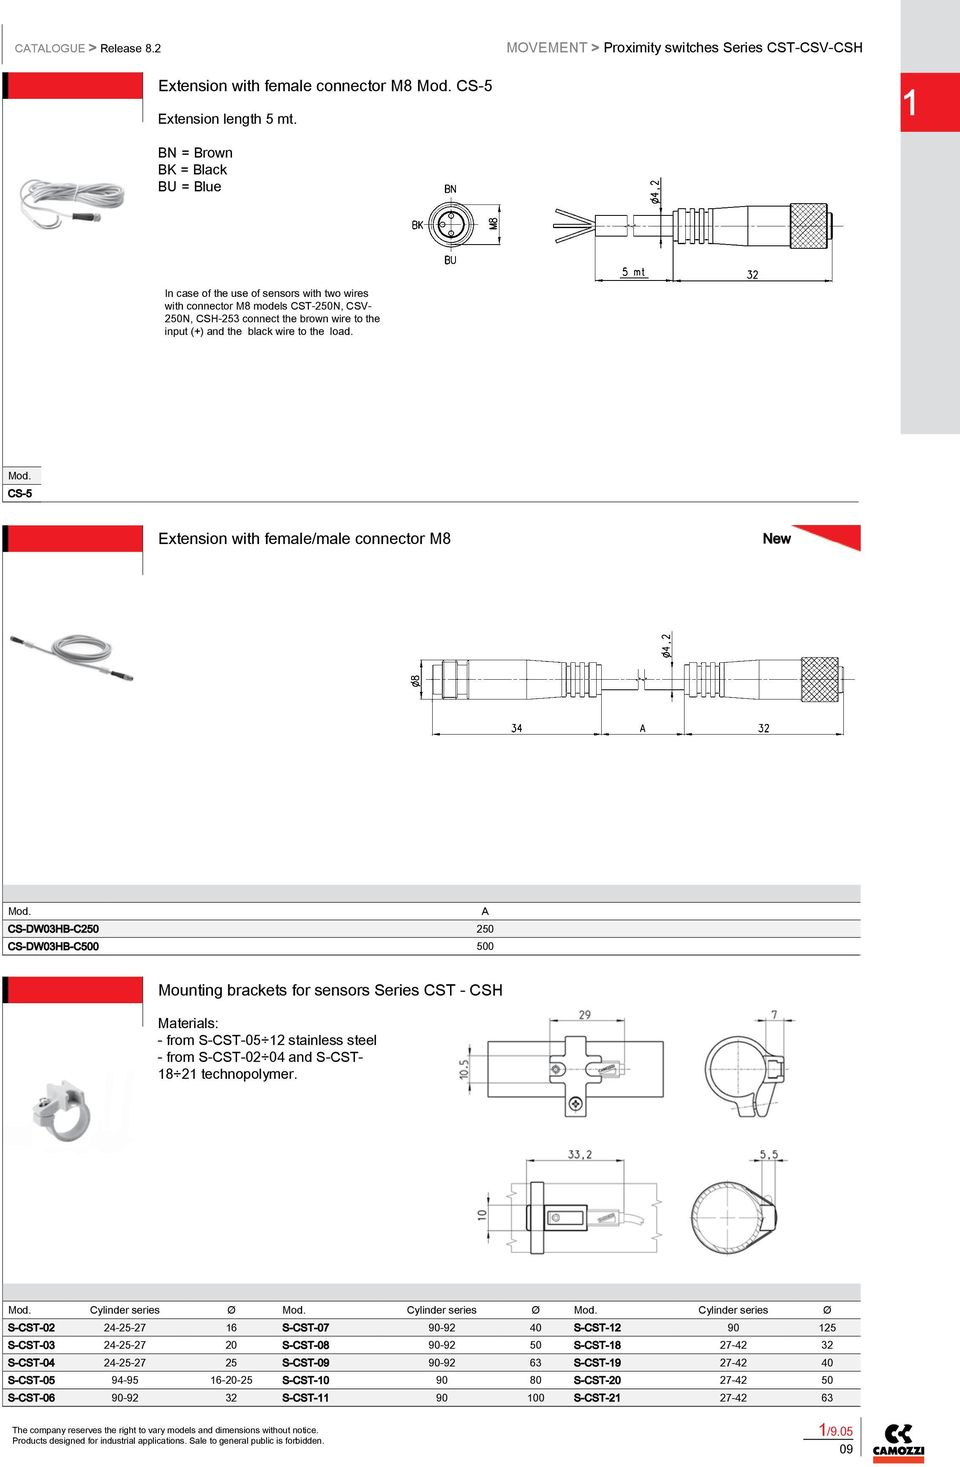 Magnetic Proximity Switches Series Cst Csv And Csh Pdf Sensors Fiber Along With Wiring Load Mod Cs 5 Extension Female Male Connector M8 New